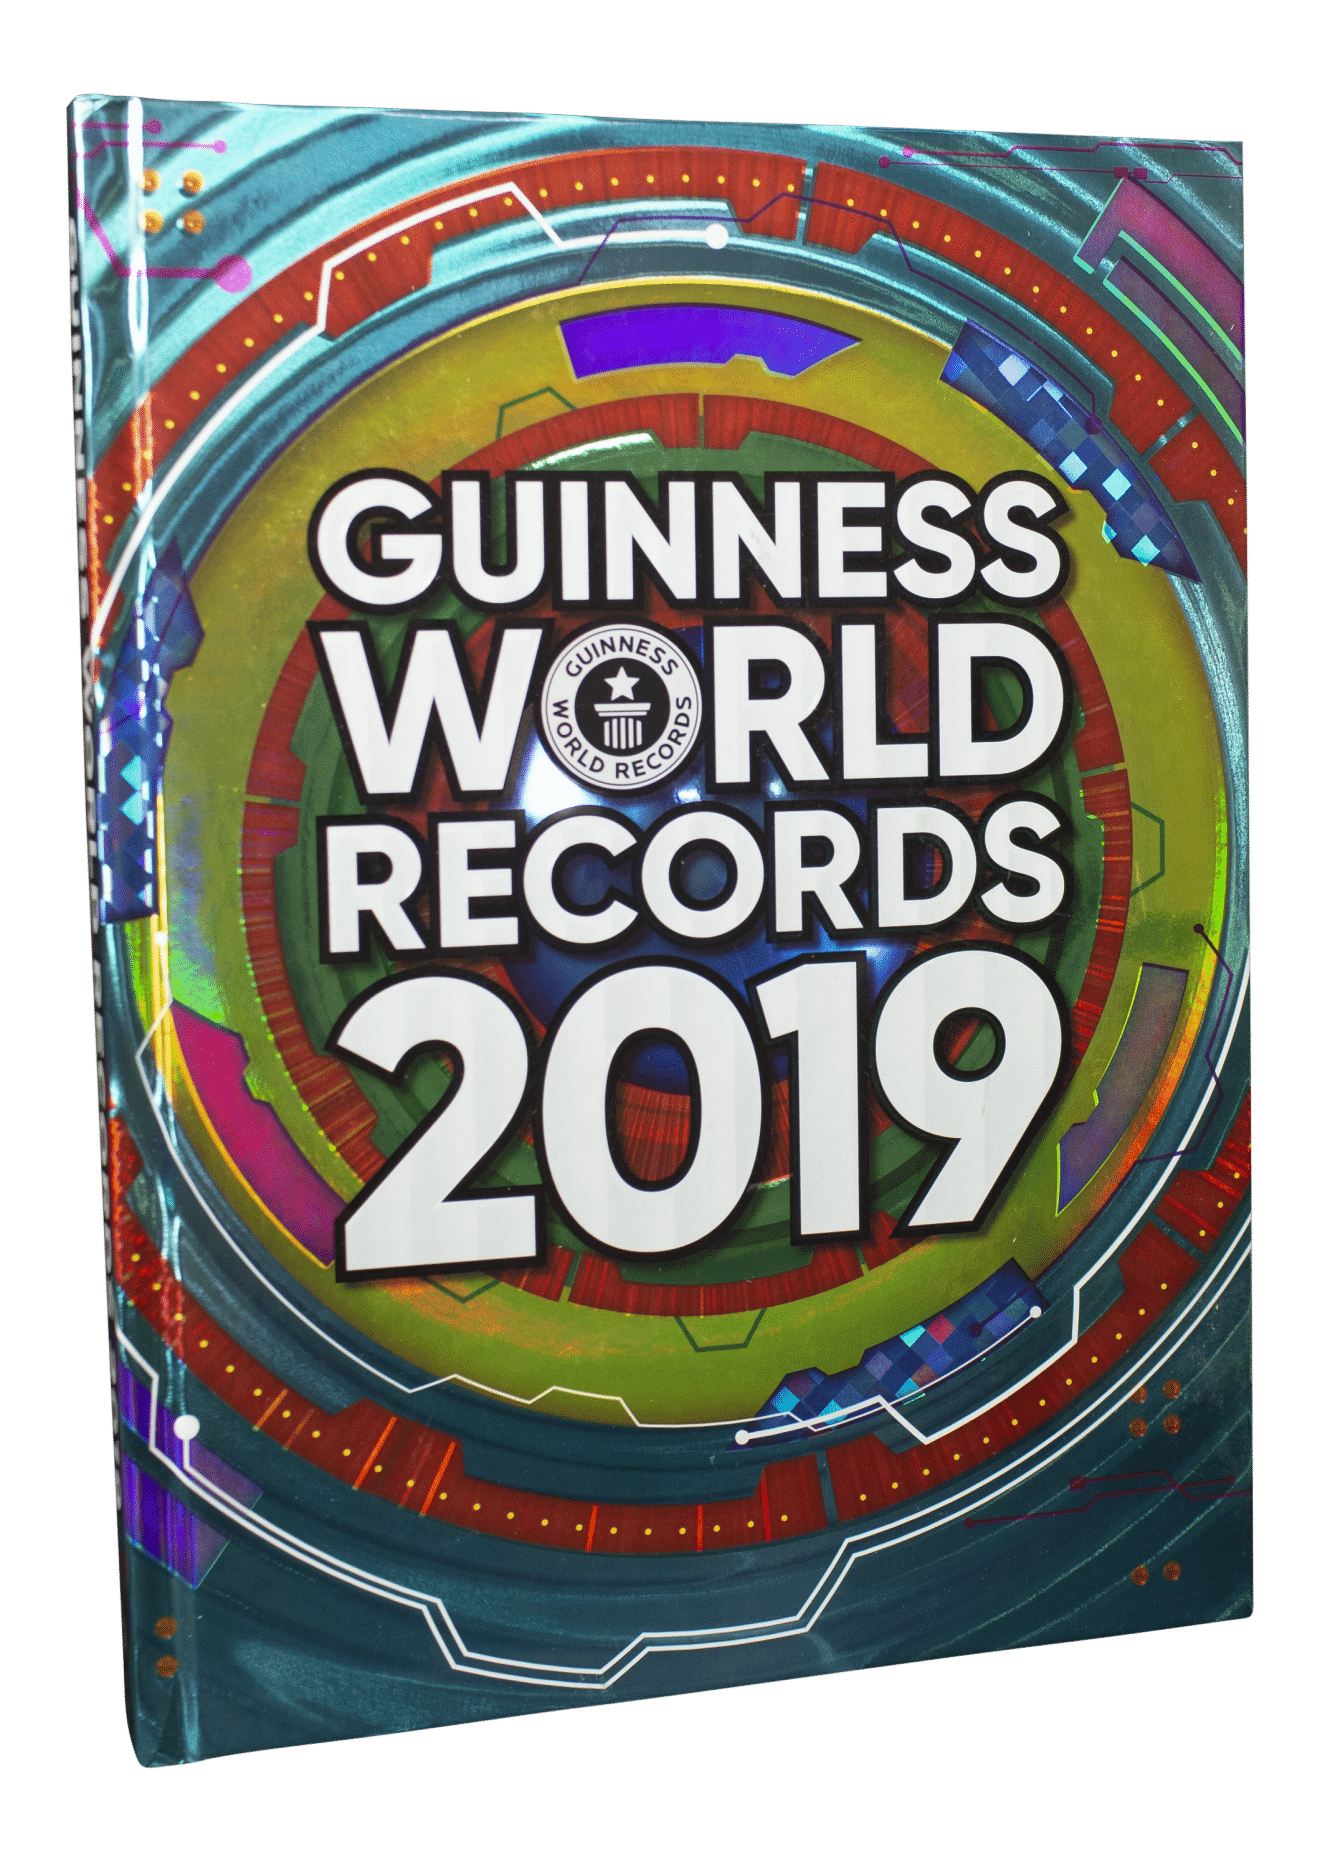 Guinness World Records, Guinness World Records 2019, rekord, rekordbog, rekordbøger, børnebog, børnebøger